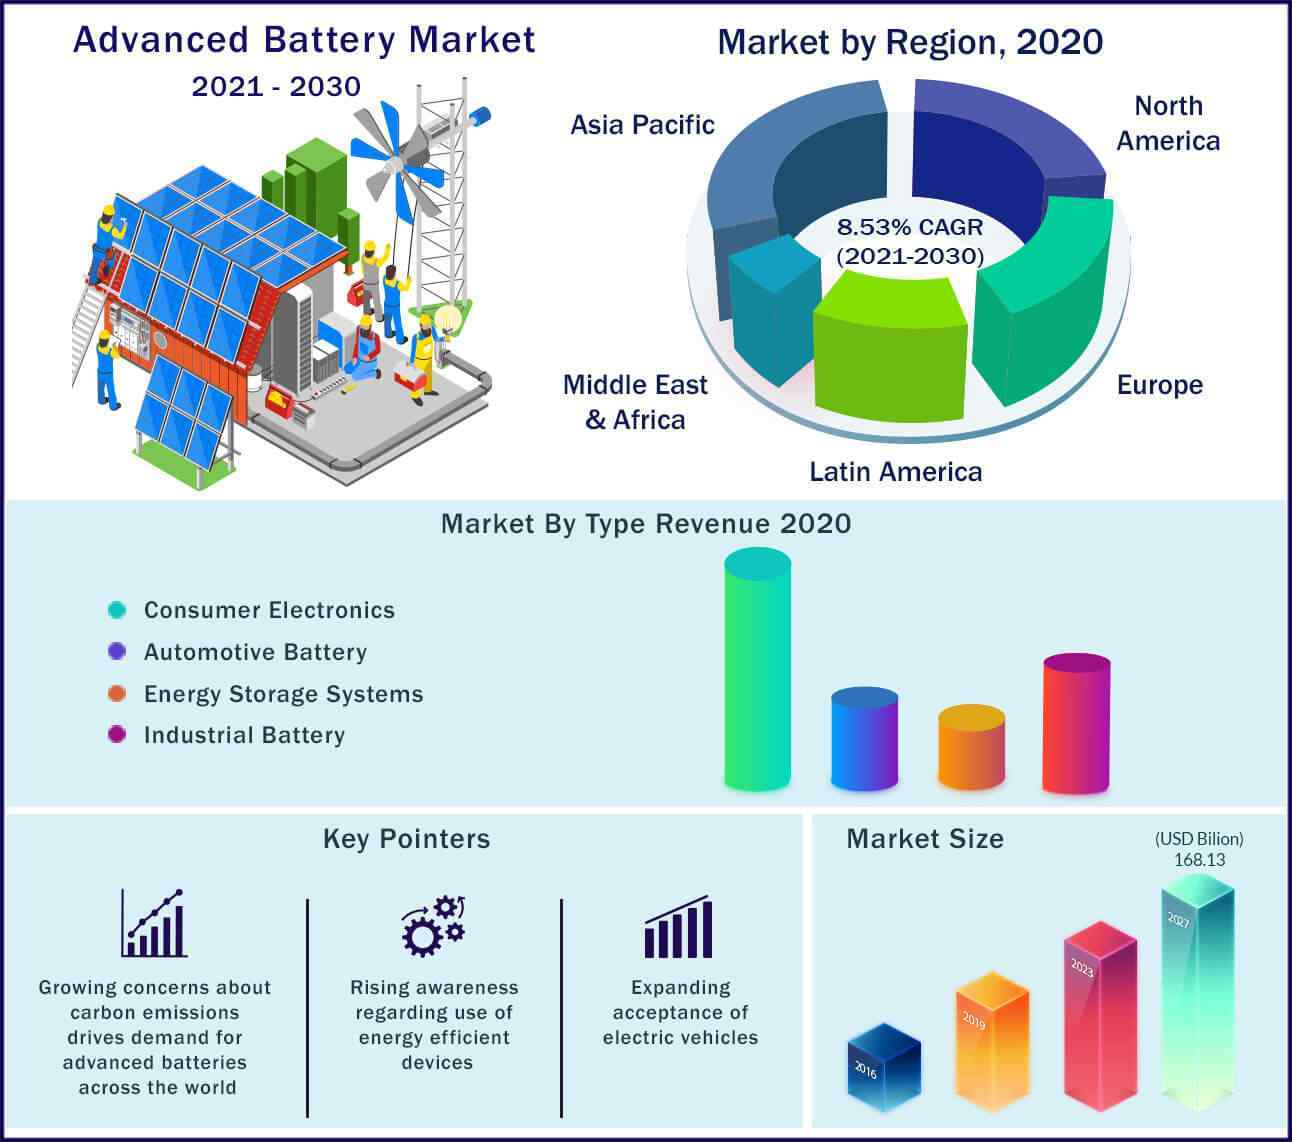 Global Advanced Battery Market 2021 to 2030